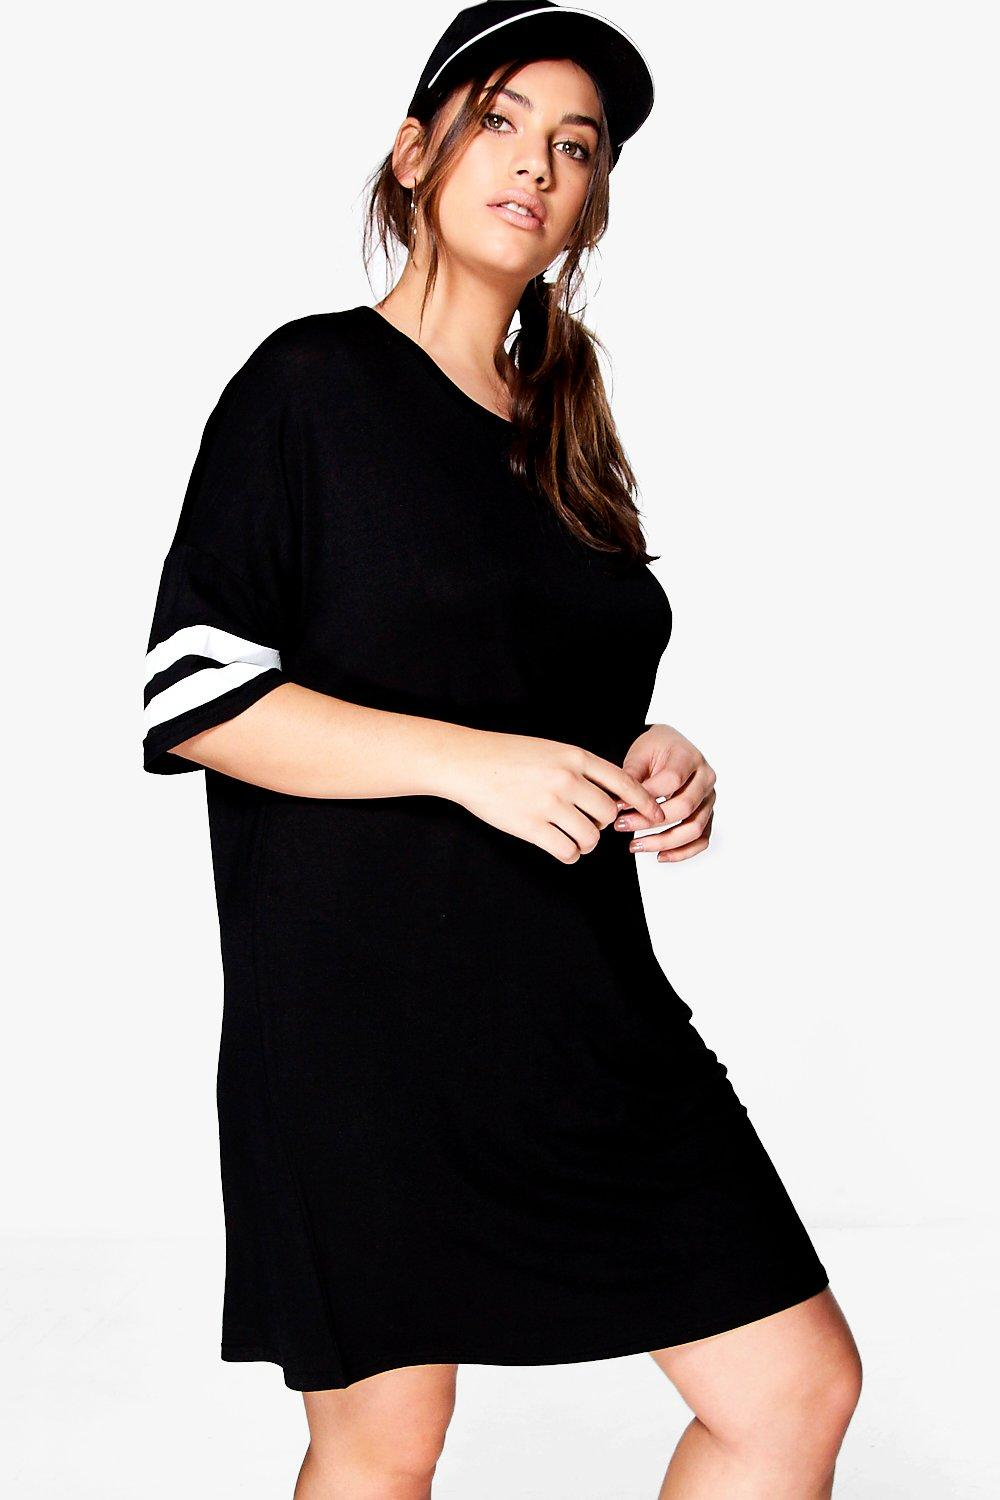 You searched for: oversize t shirt! Etsy is the home to thousands of handmade, vintage, and one-of-a-kind products and gifts related to your search. No matter what you're looking for or where you are in the world, our global marketplace of sellers can help you find unique and affordable options. Let's get started!